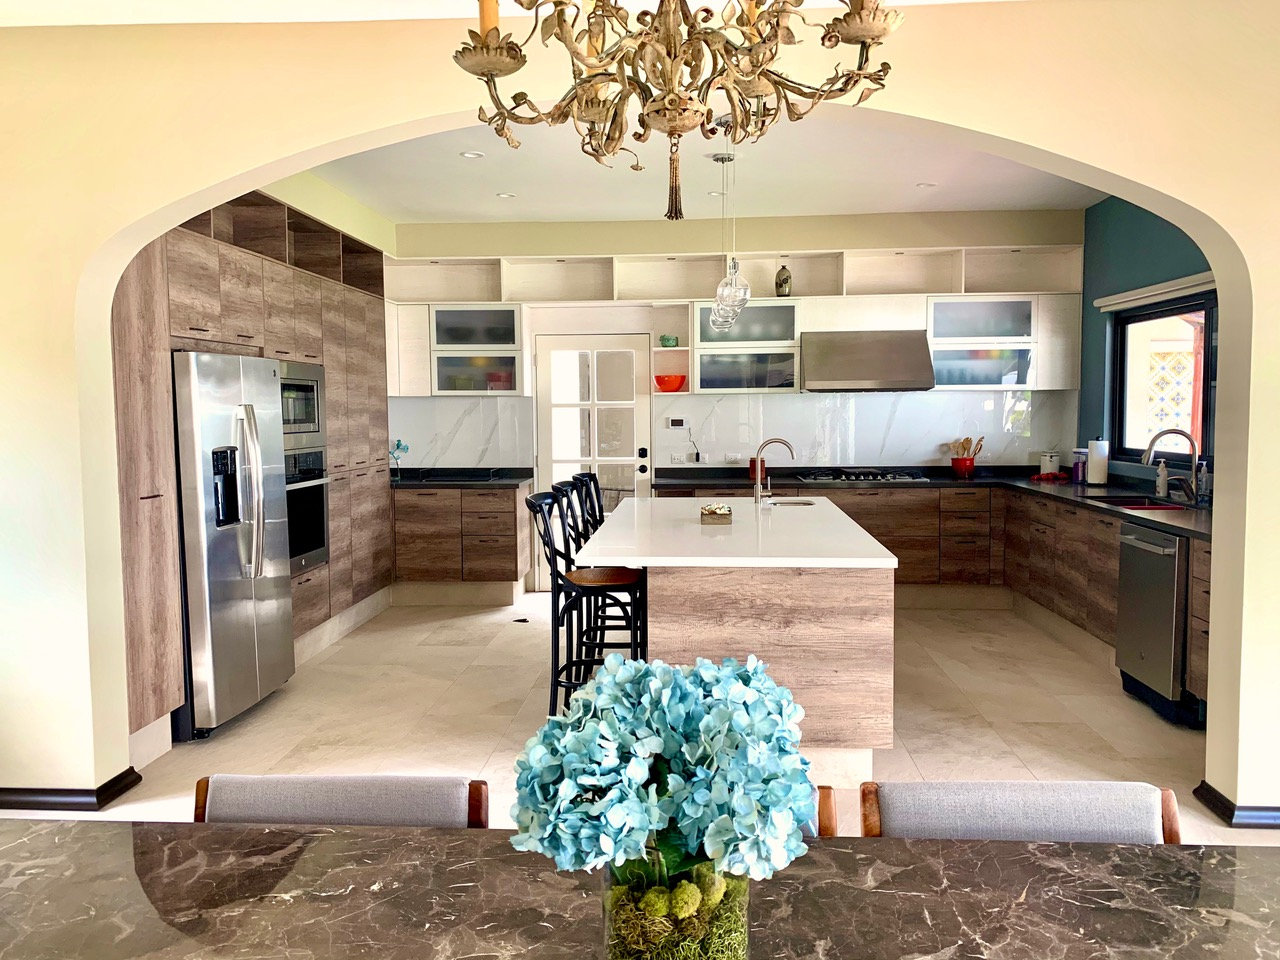 Custom kitchen with quatrz countertops.